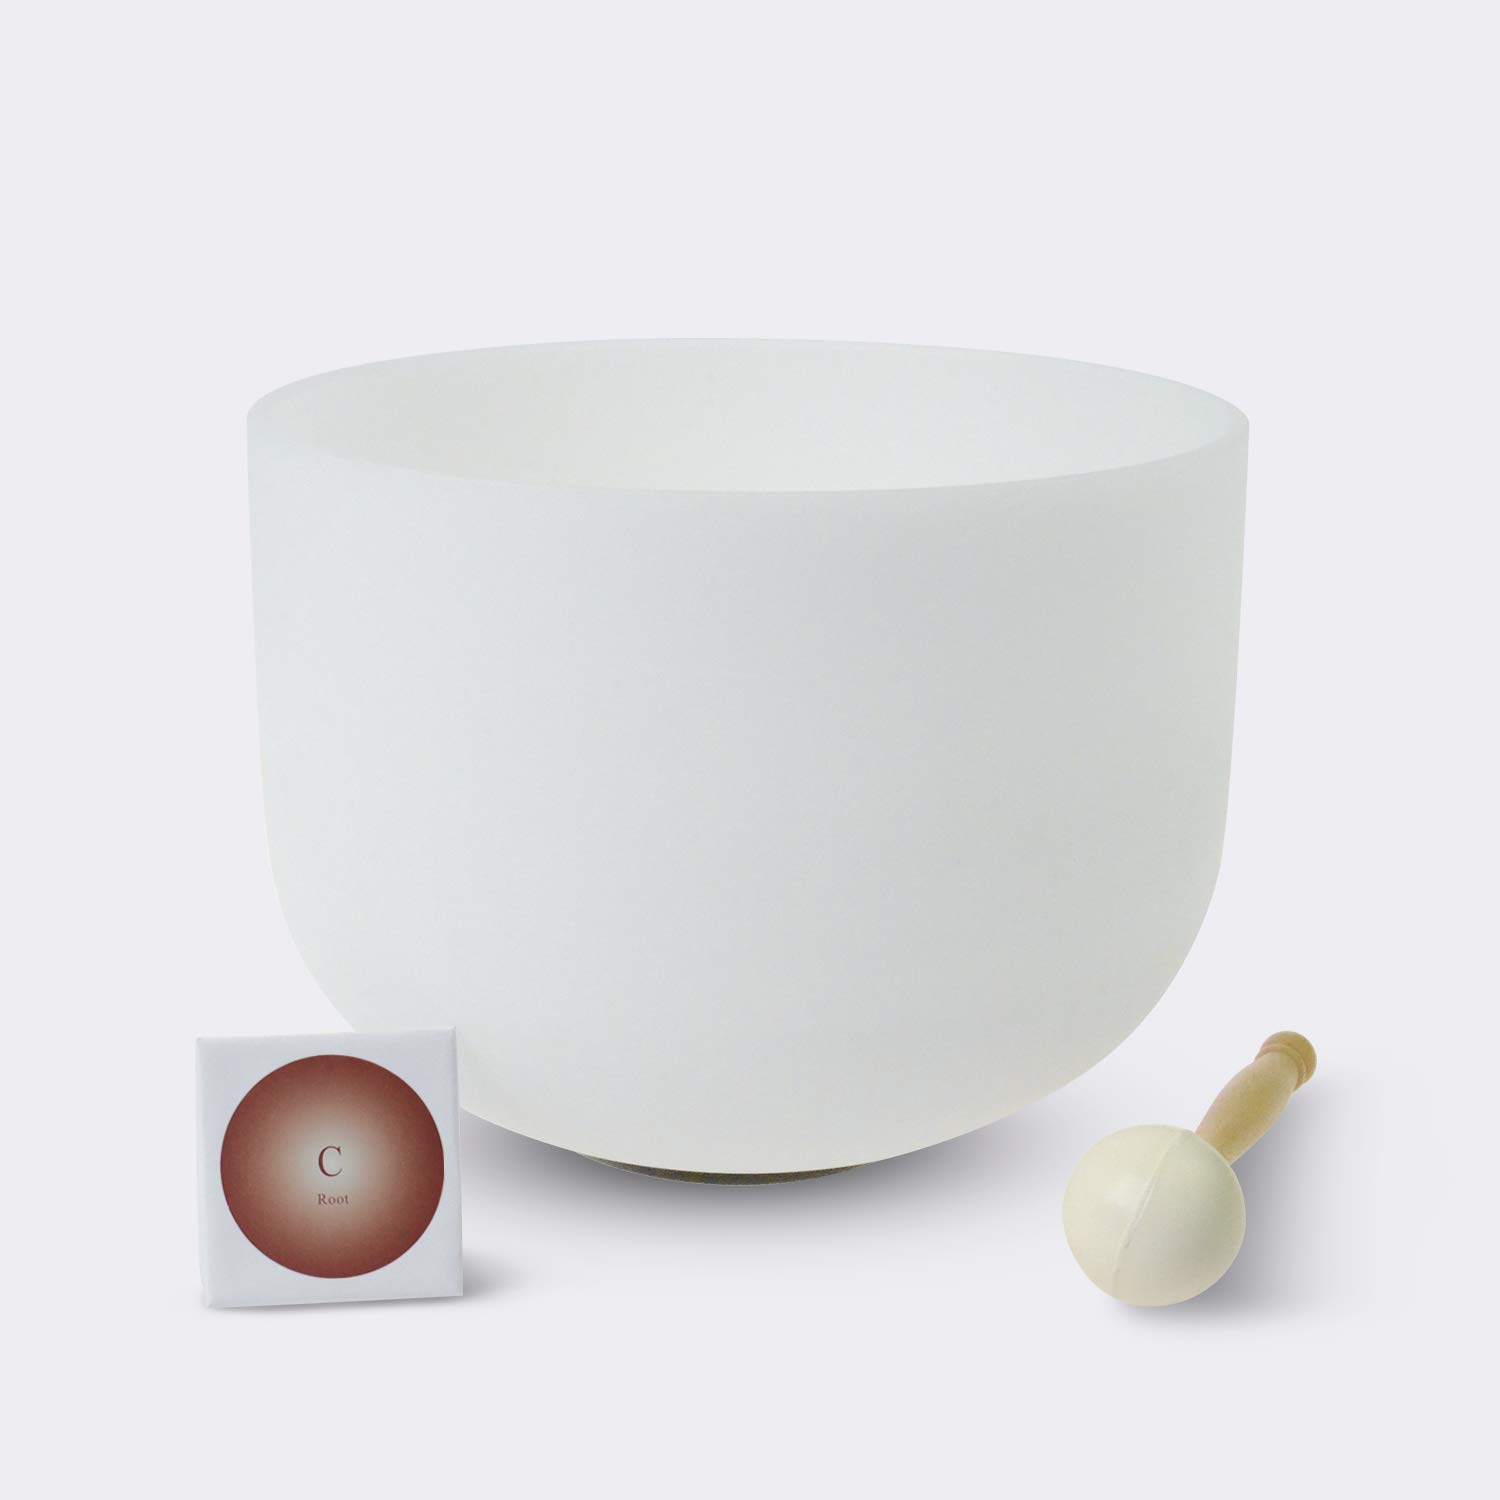 #1 ROOT CHAKRA440 Hz C Note Crystal Singing Bowl 12 inch - O-Ring and Rubber Mallet Included. American quartz made crystal singing bowls,The highest quality standards and the best quality crystal singing bowls in the world made by TOPFUND